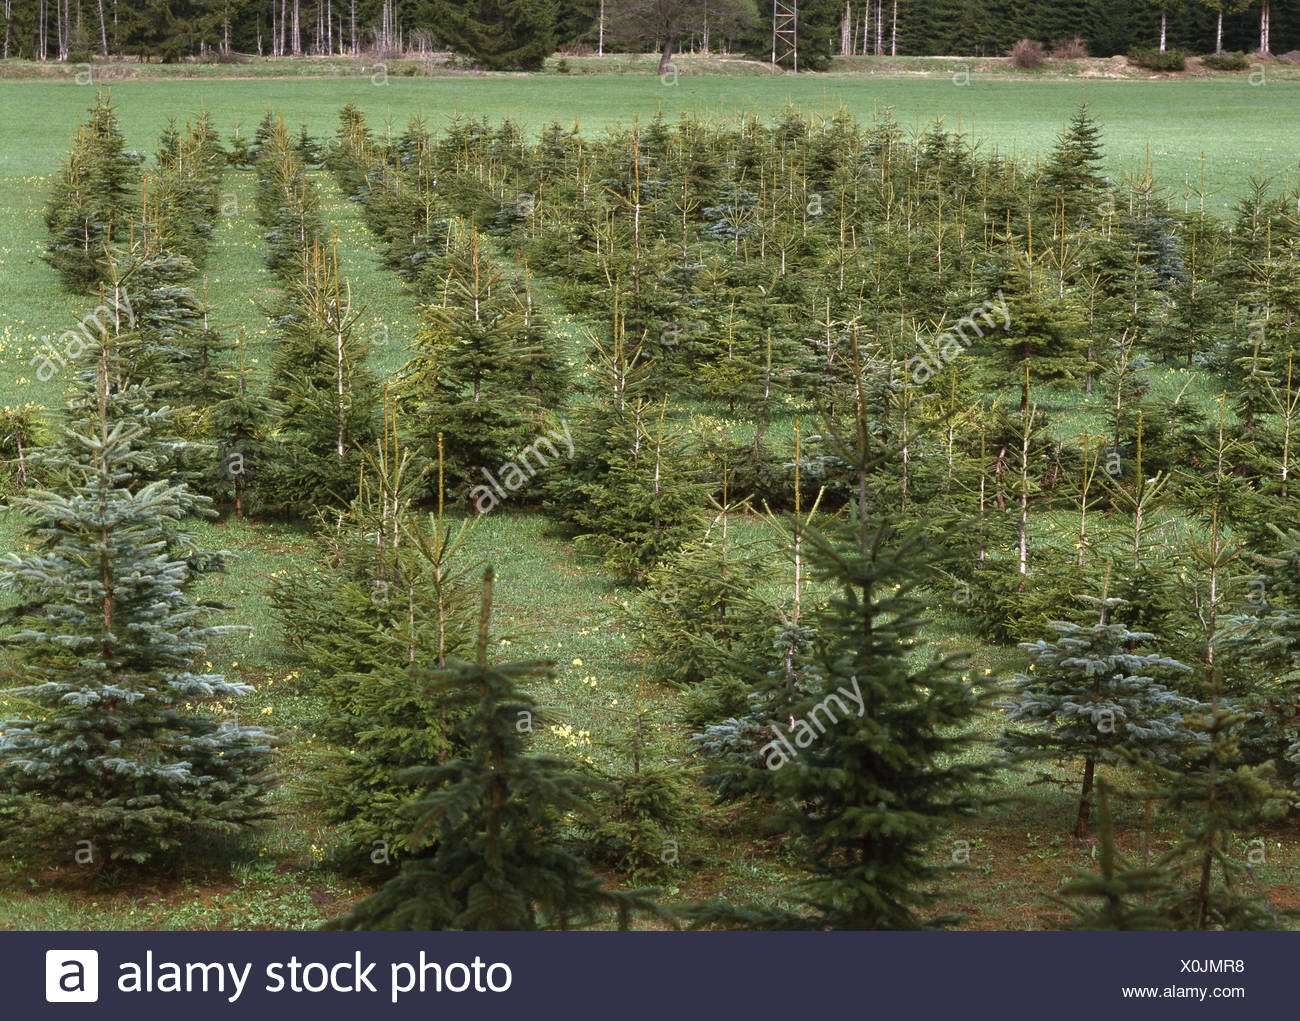 Nursery garden, conifers, reforestation, tree breeding, Christmas trees, firs, blue spruces, spruces - Stock Image